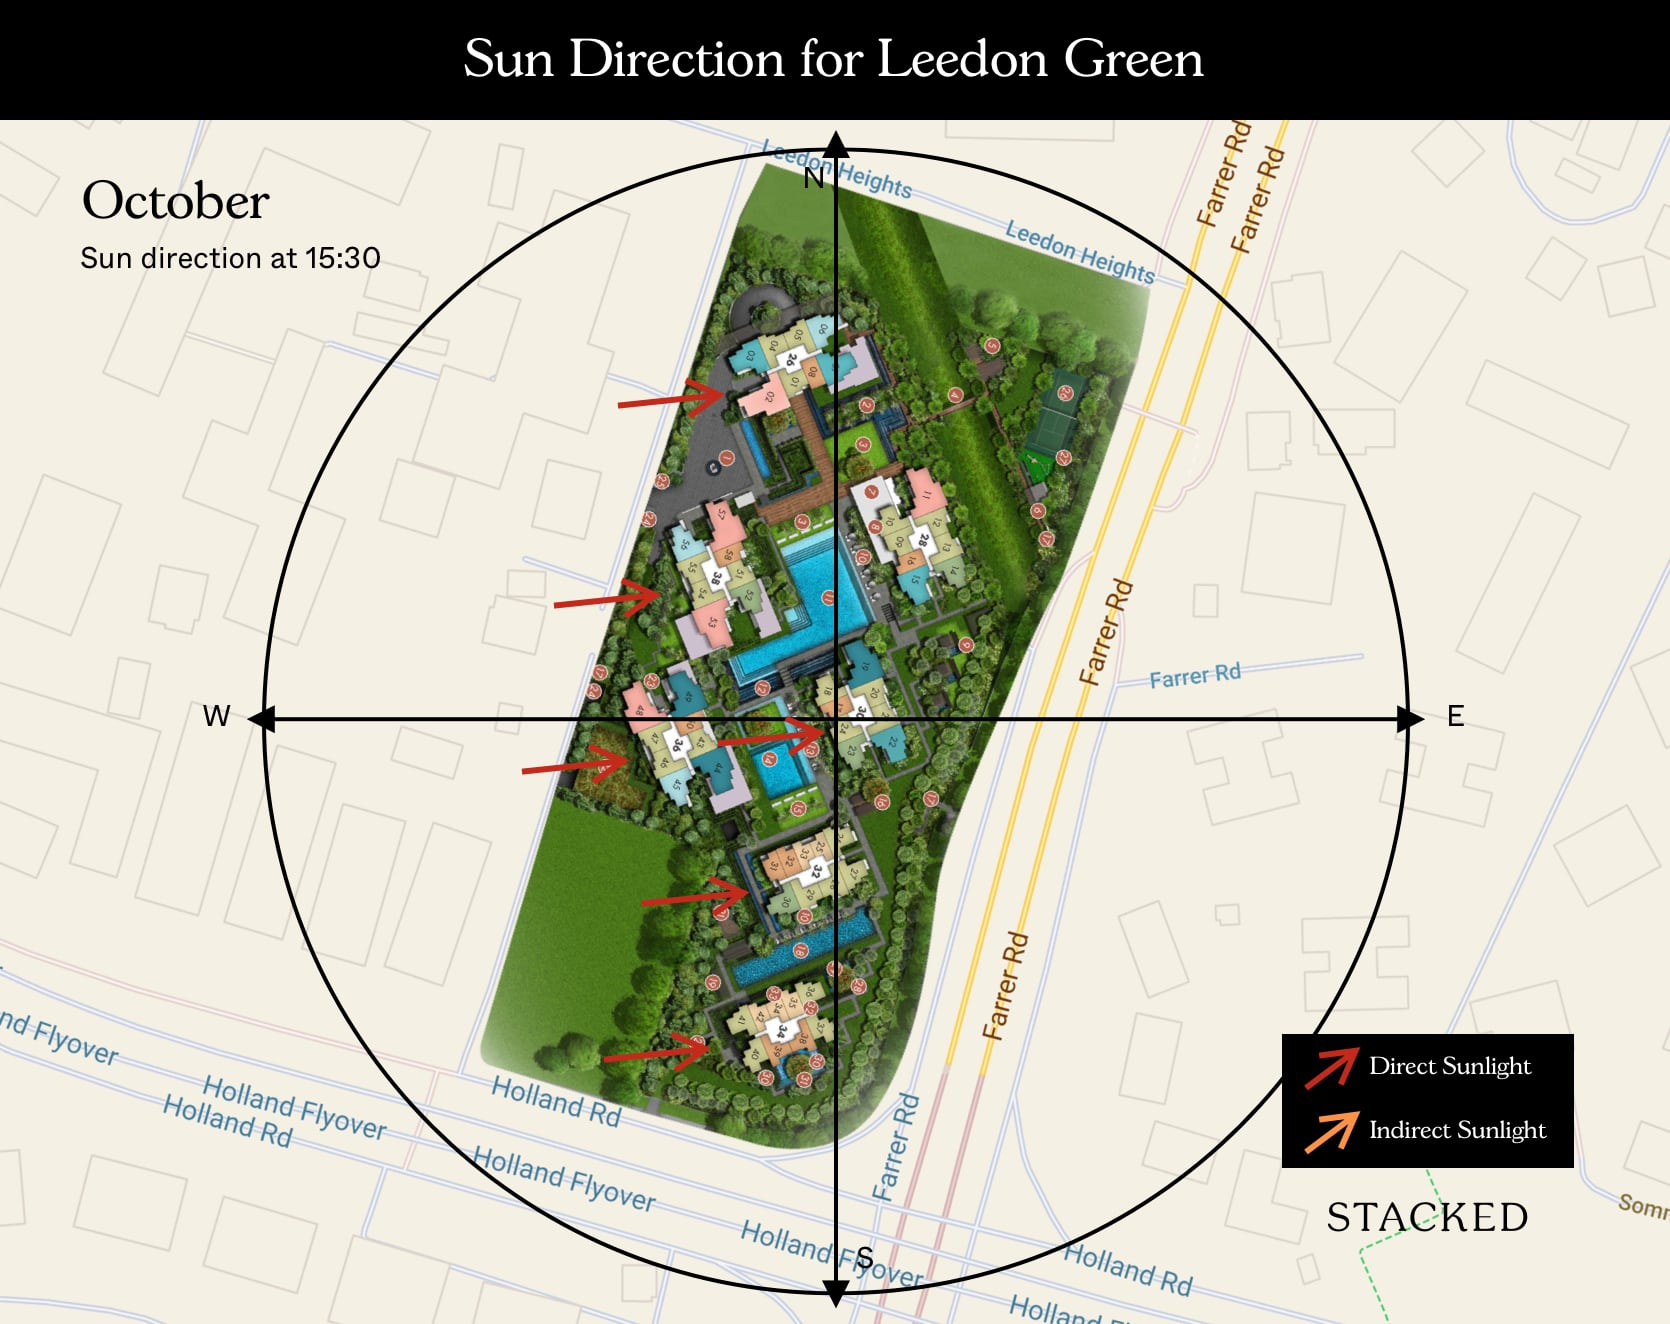 Leedon Green Sun Direction October